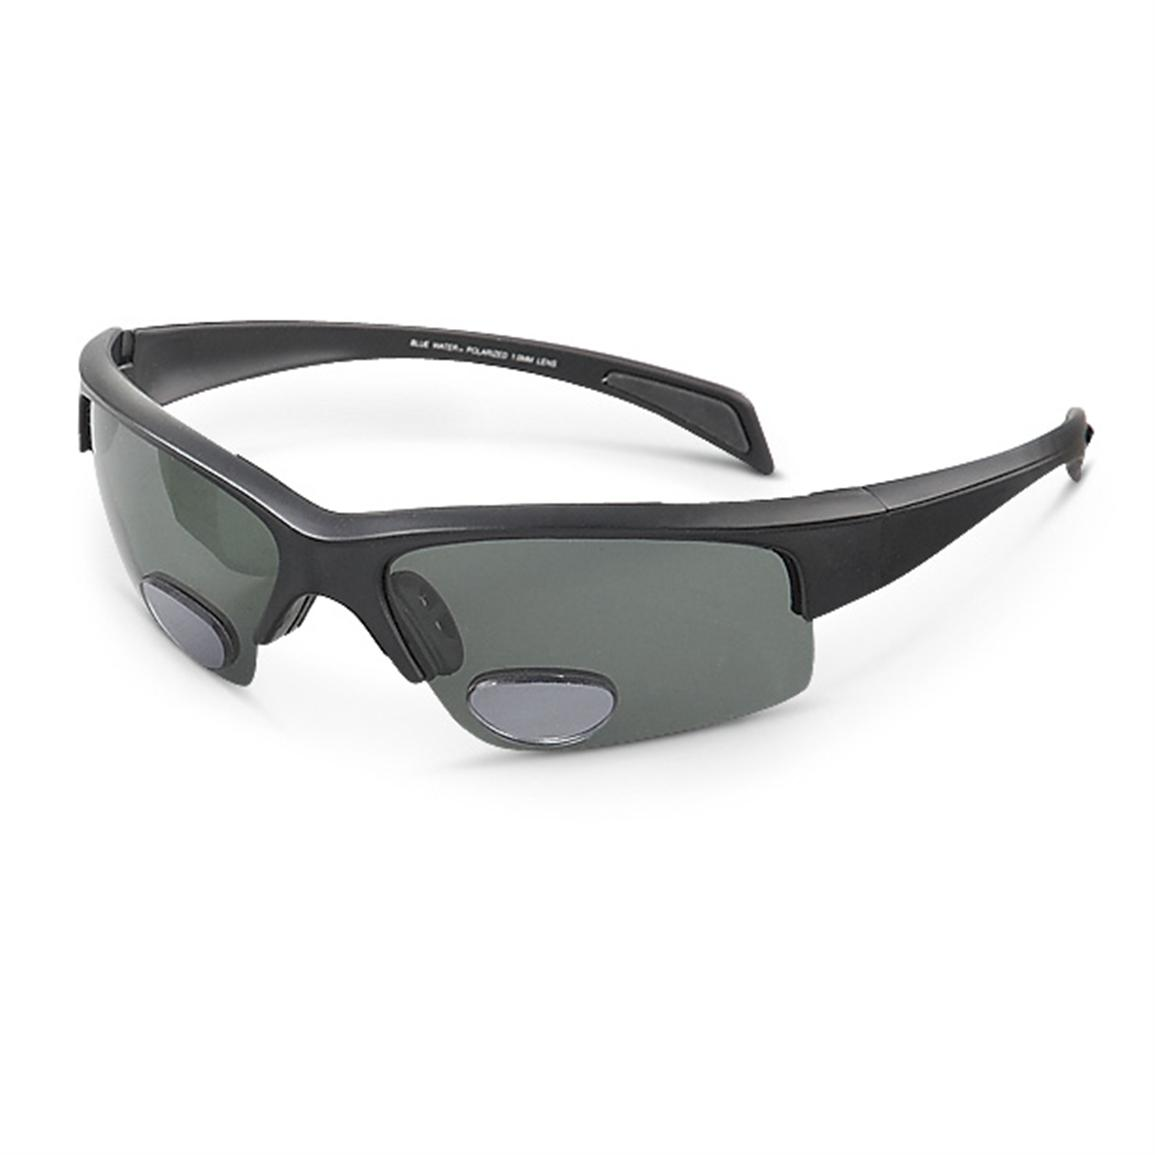 BlueWater Polarized Bifocal Sunglasses, Half Frame